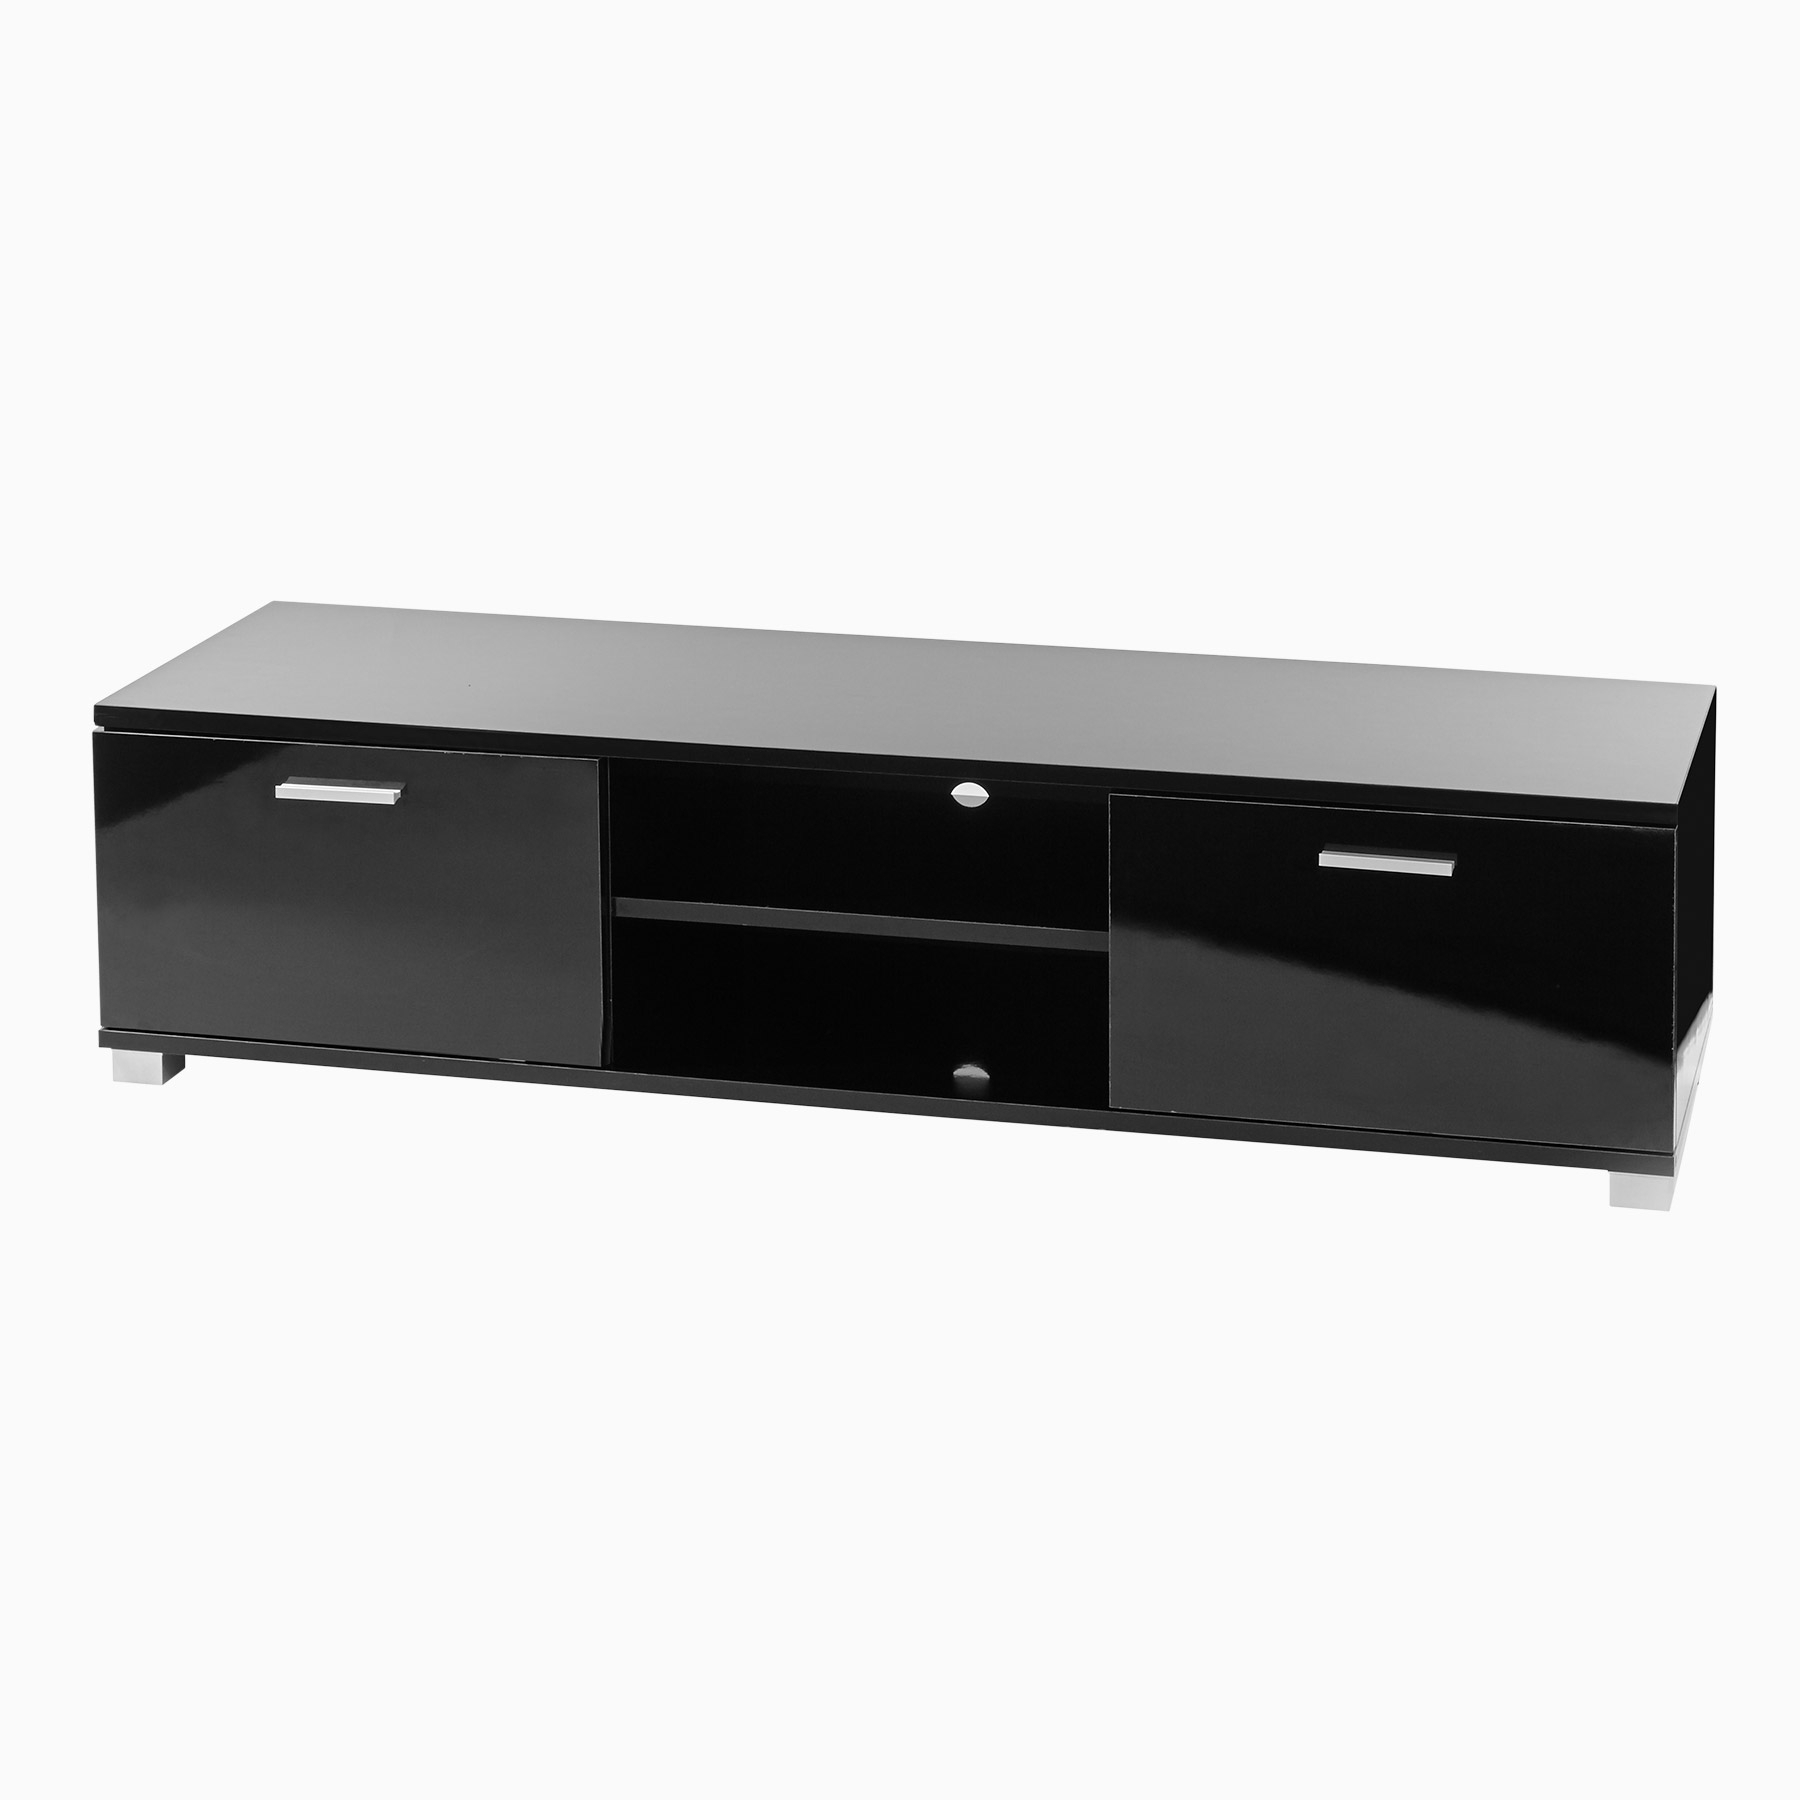 Well Known Black Gloss Tv Cabinets In Sd Ht01 Black Gloss Tv Cabinet For Up To 60 Inch Screens (View 17 of 20)